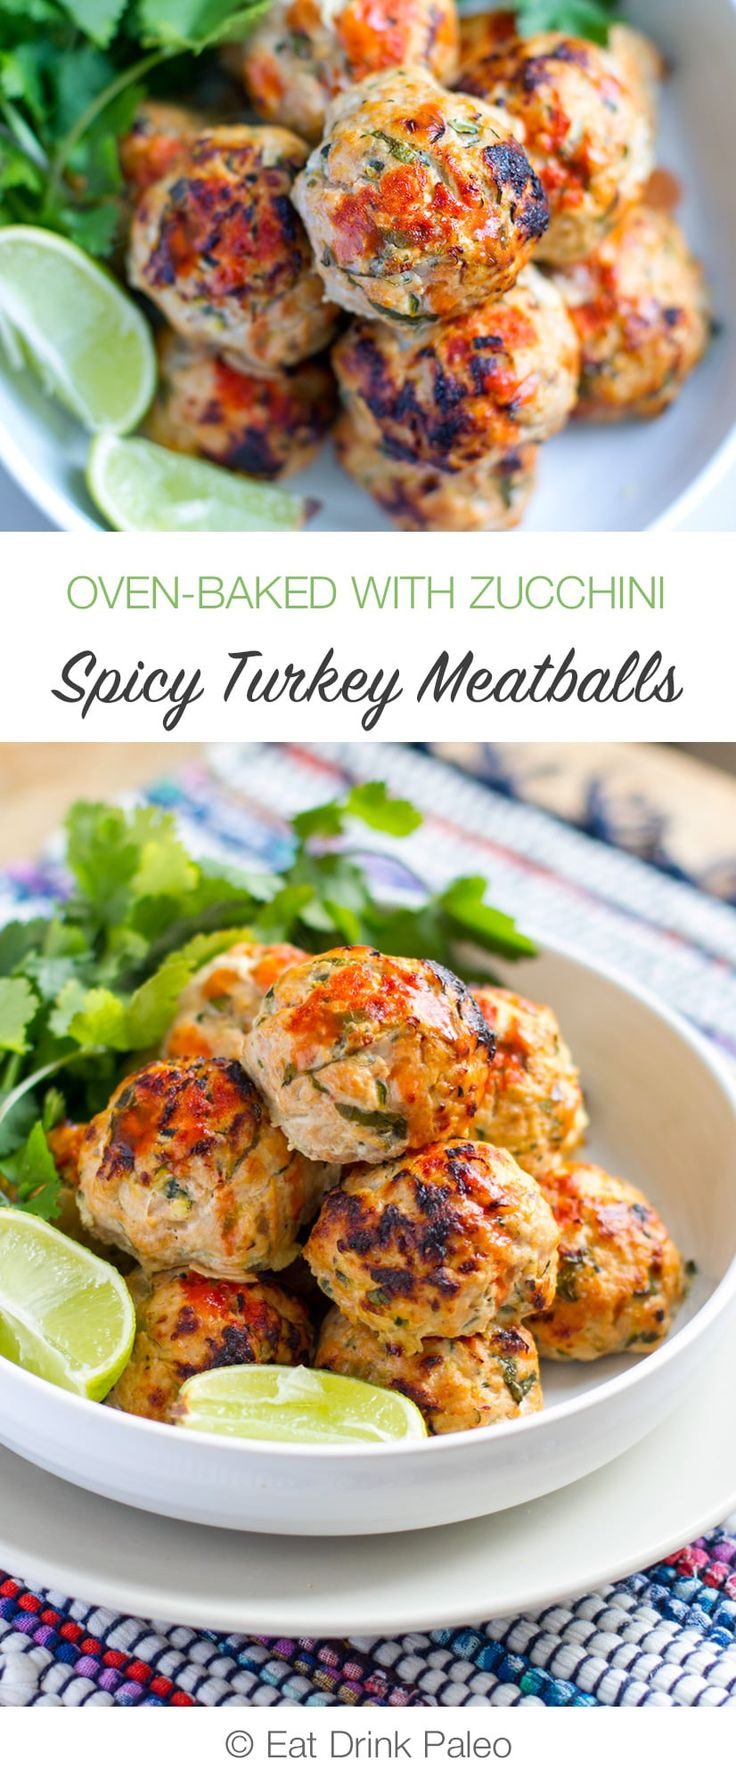 Baked Spicy Turkey Meatballs With Zucchini (Paleo, Gluten-free, Whole30, Nut-free)